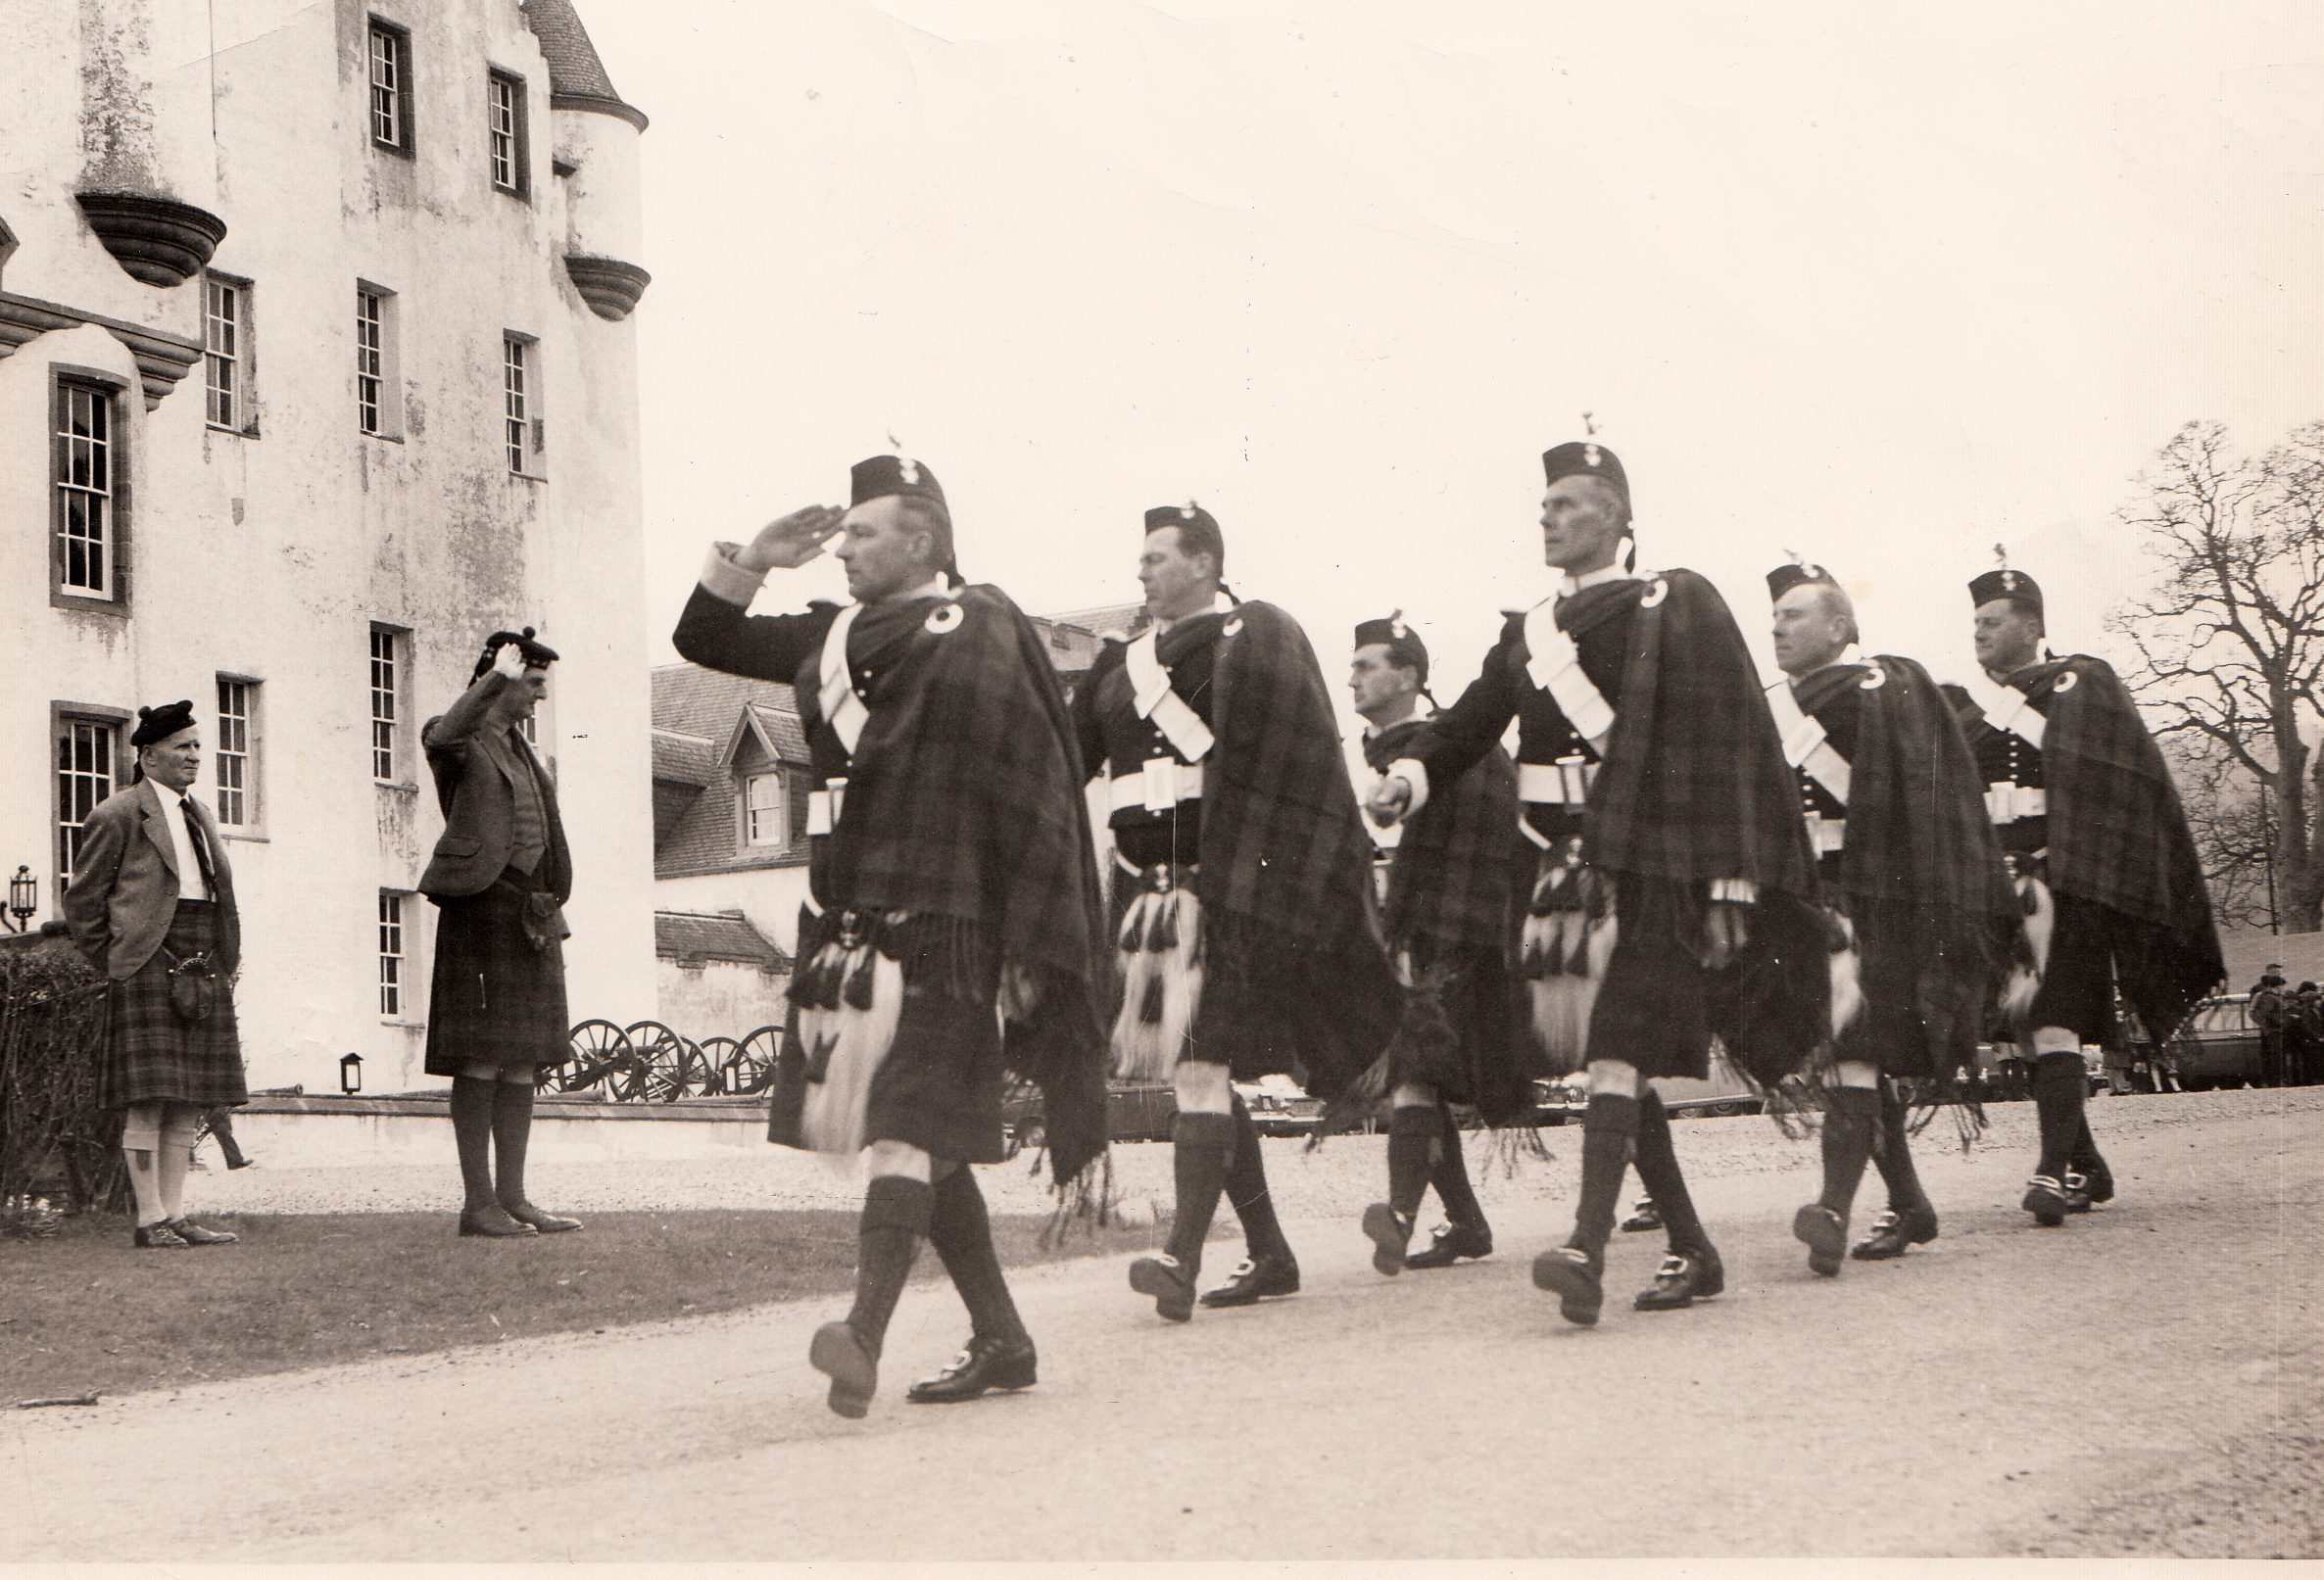 The 10th Duke of Atholl receiving the salute from the Atholl Highlanders.